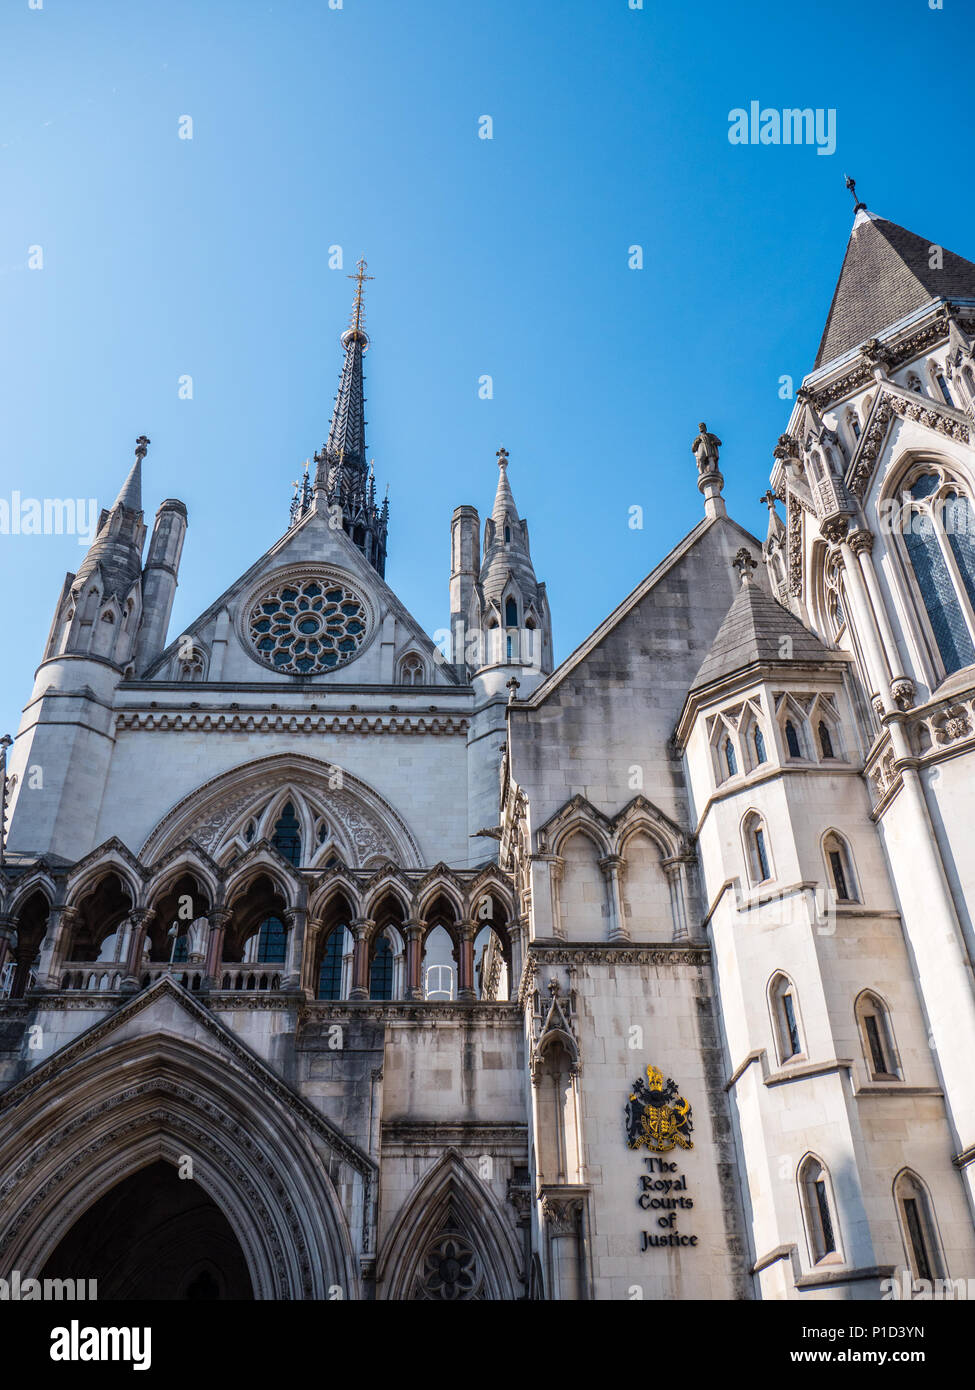 The High Court, Royal Courts Of Justice, London, England, UK, GB. - Stock Image